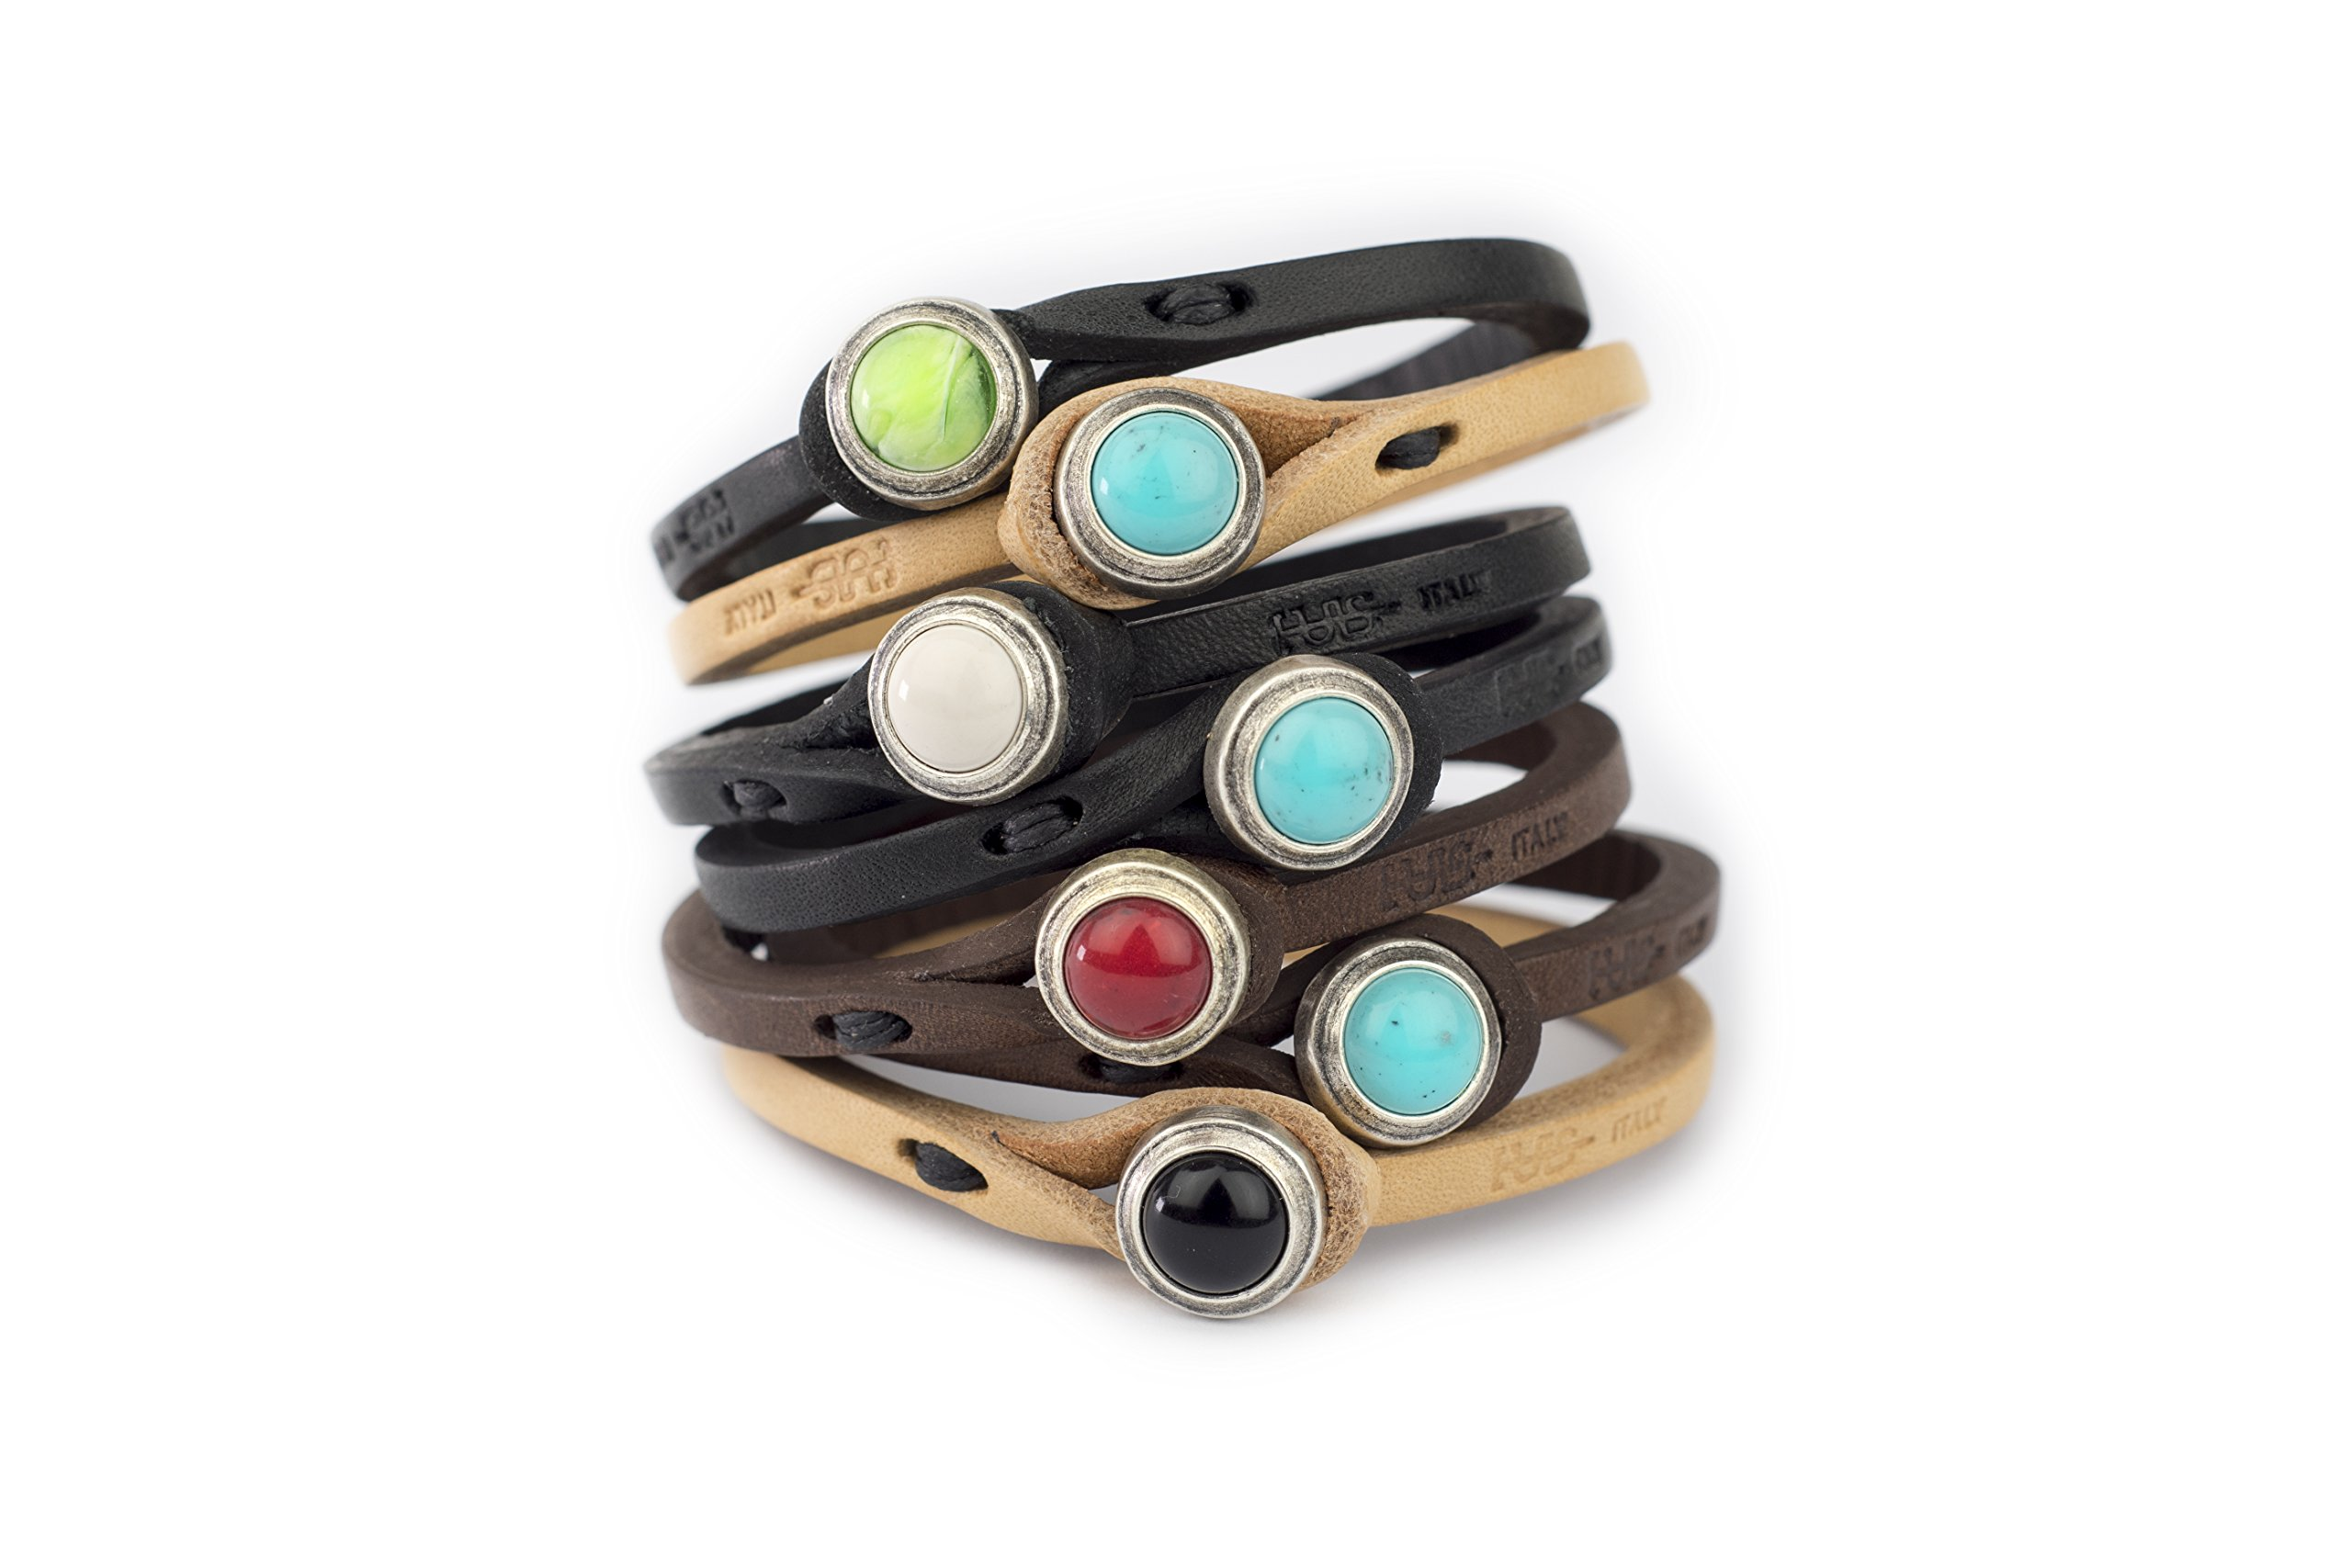 Genuine Italian Leather Bracelet in Multiple Color Combinations | Stone Closure | Handcrafted in Italy (Ginger) by Tulsi